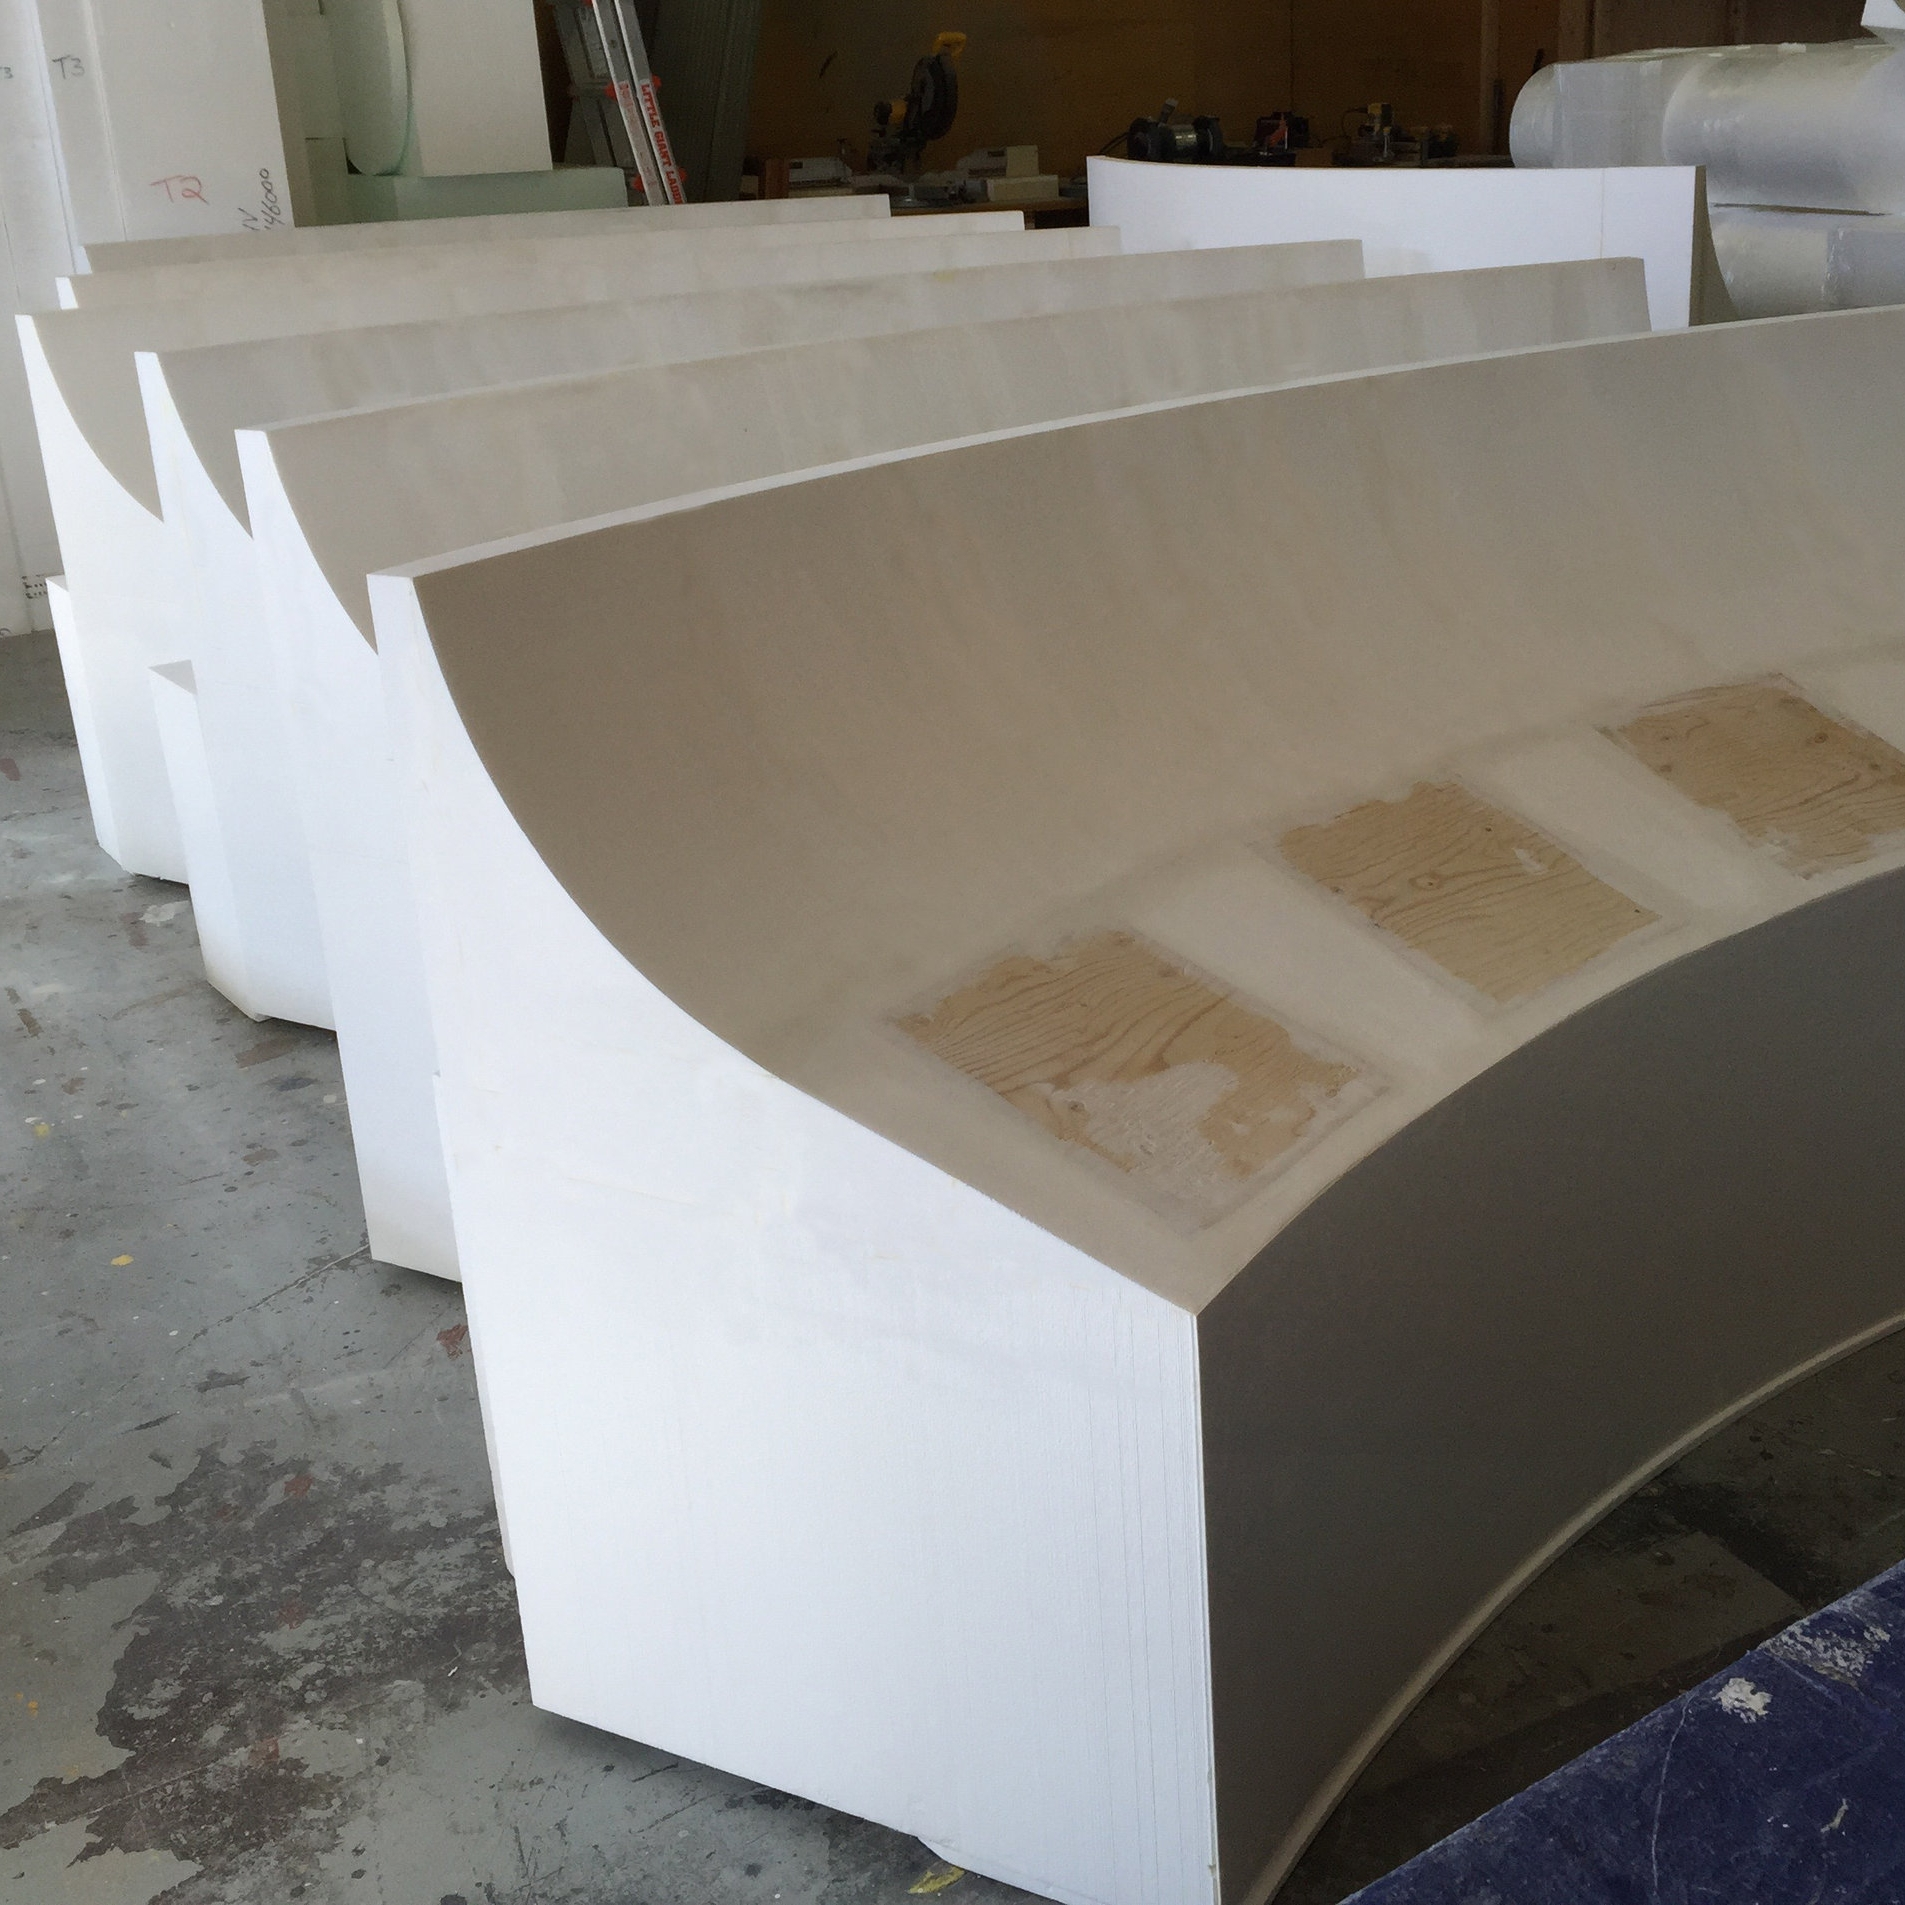 Construction Forms and Molds